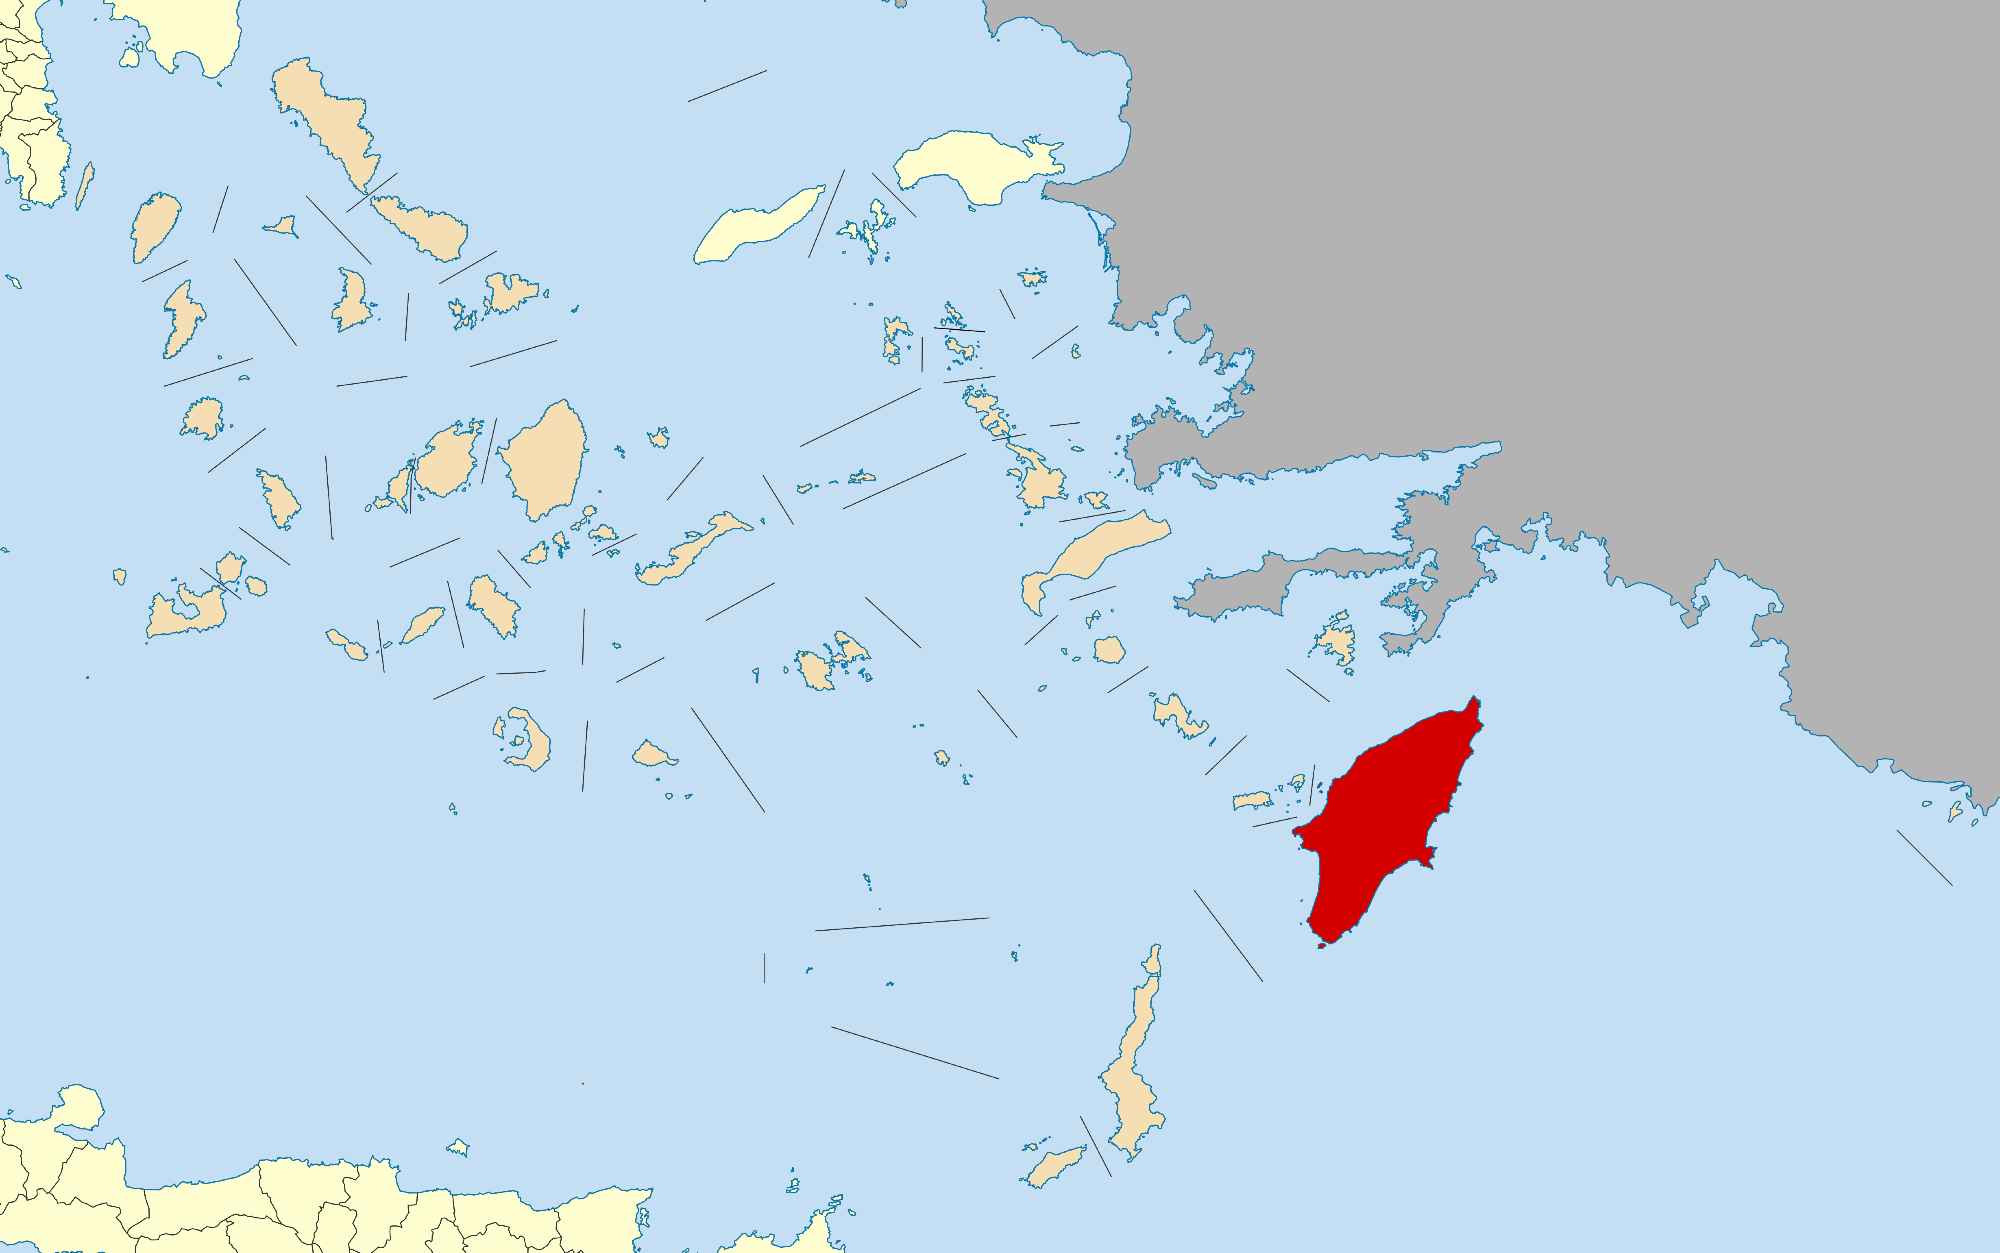 map of rhodes greece island Rhodes Wikipedia map of rhodes greece island